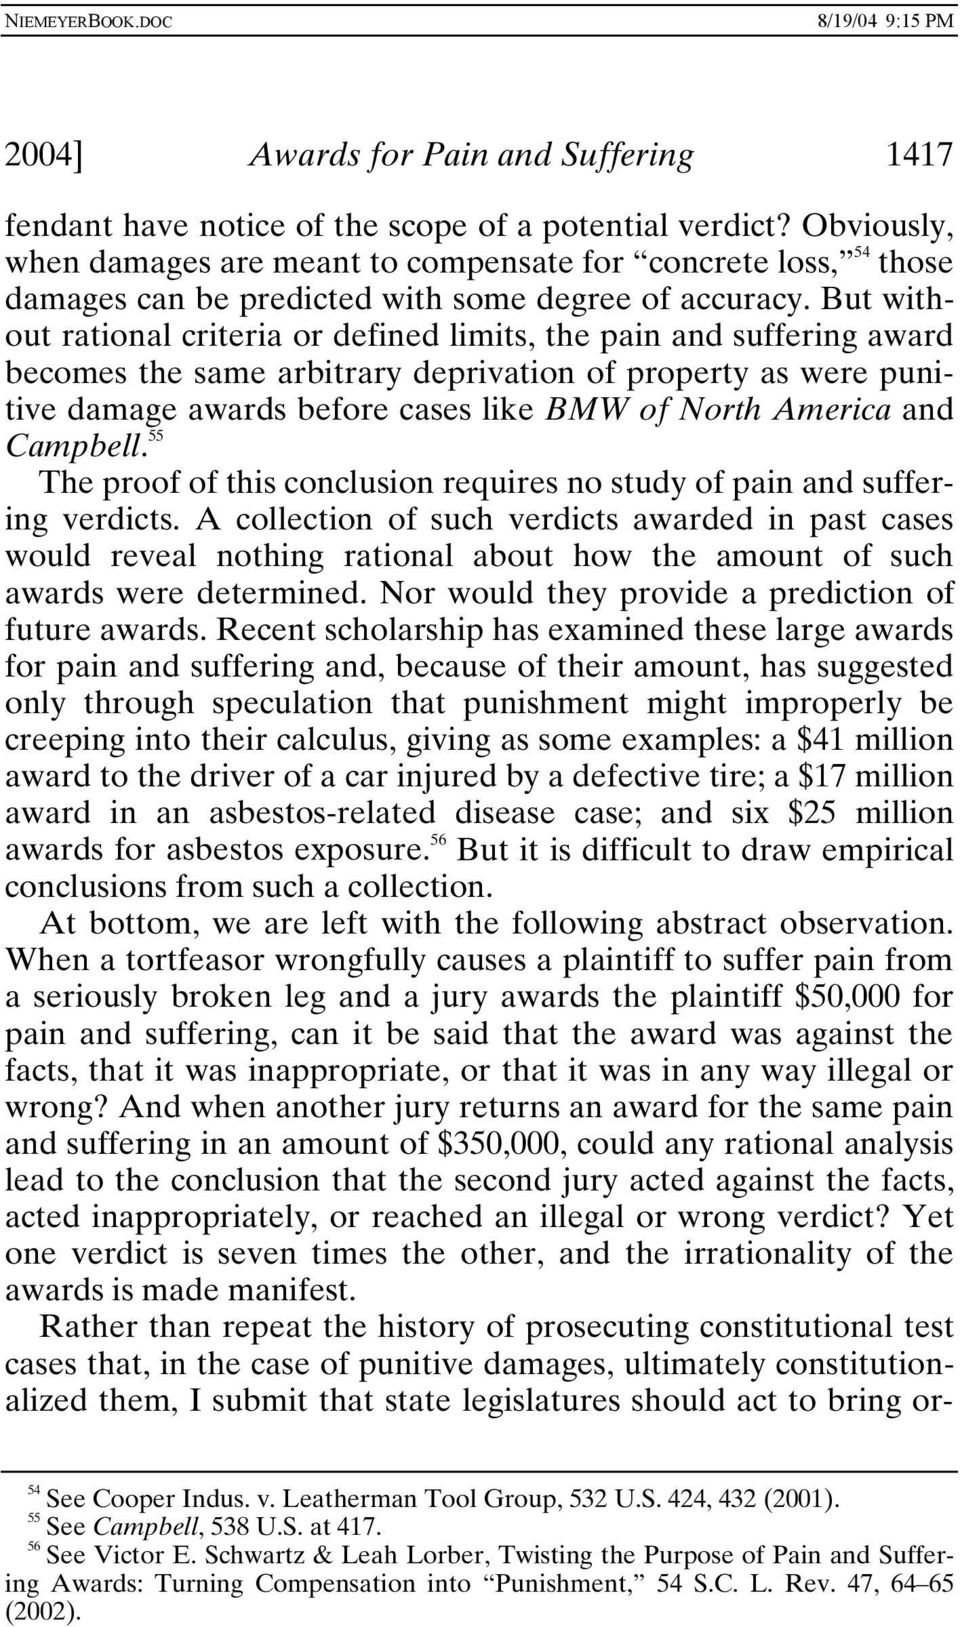 But without rational criteria or defined limits, the pain and suffering award becomes the same arbitrary deprivation of property as were punitive damage awards before cases like BMW of North America